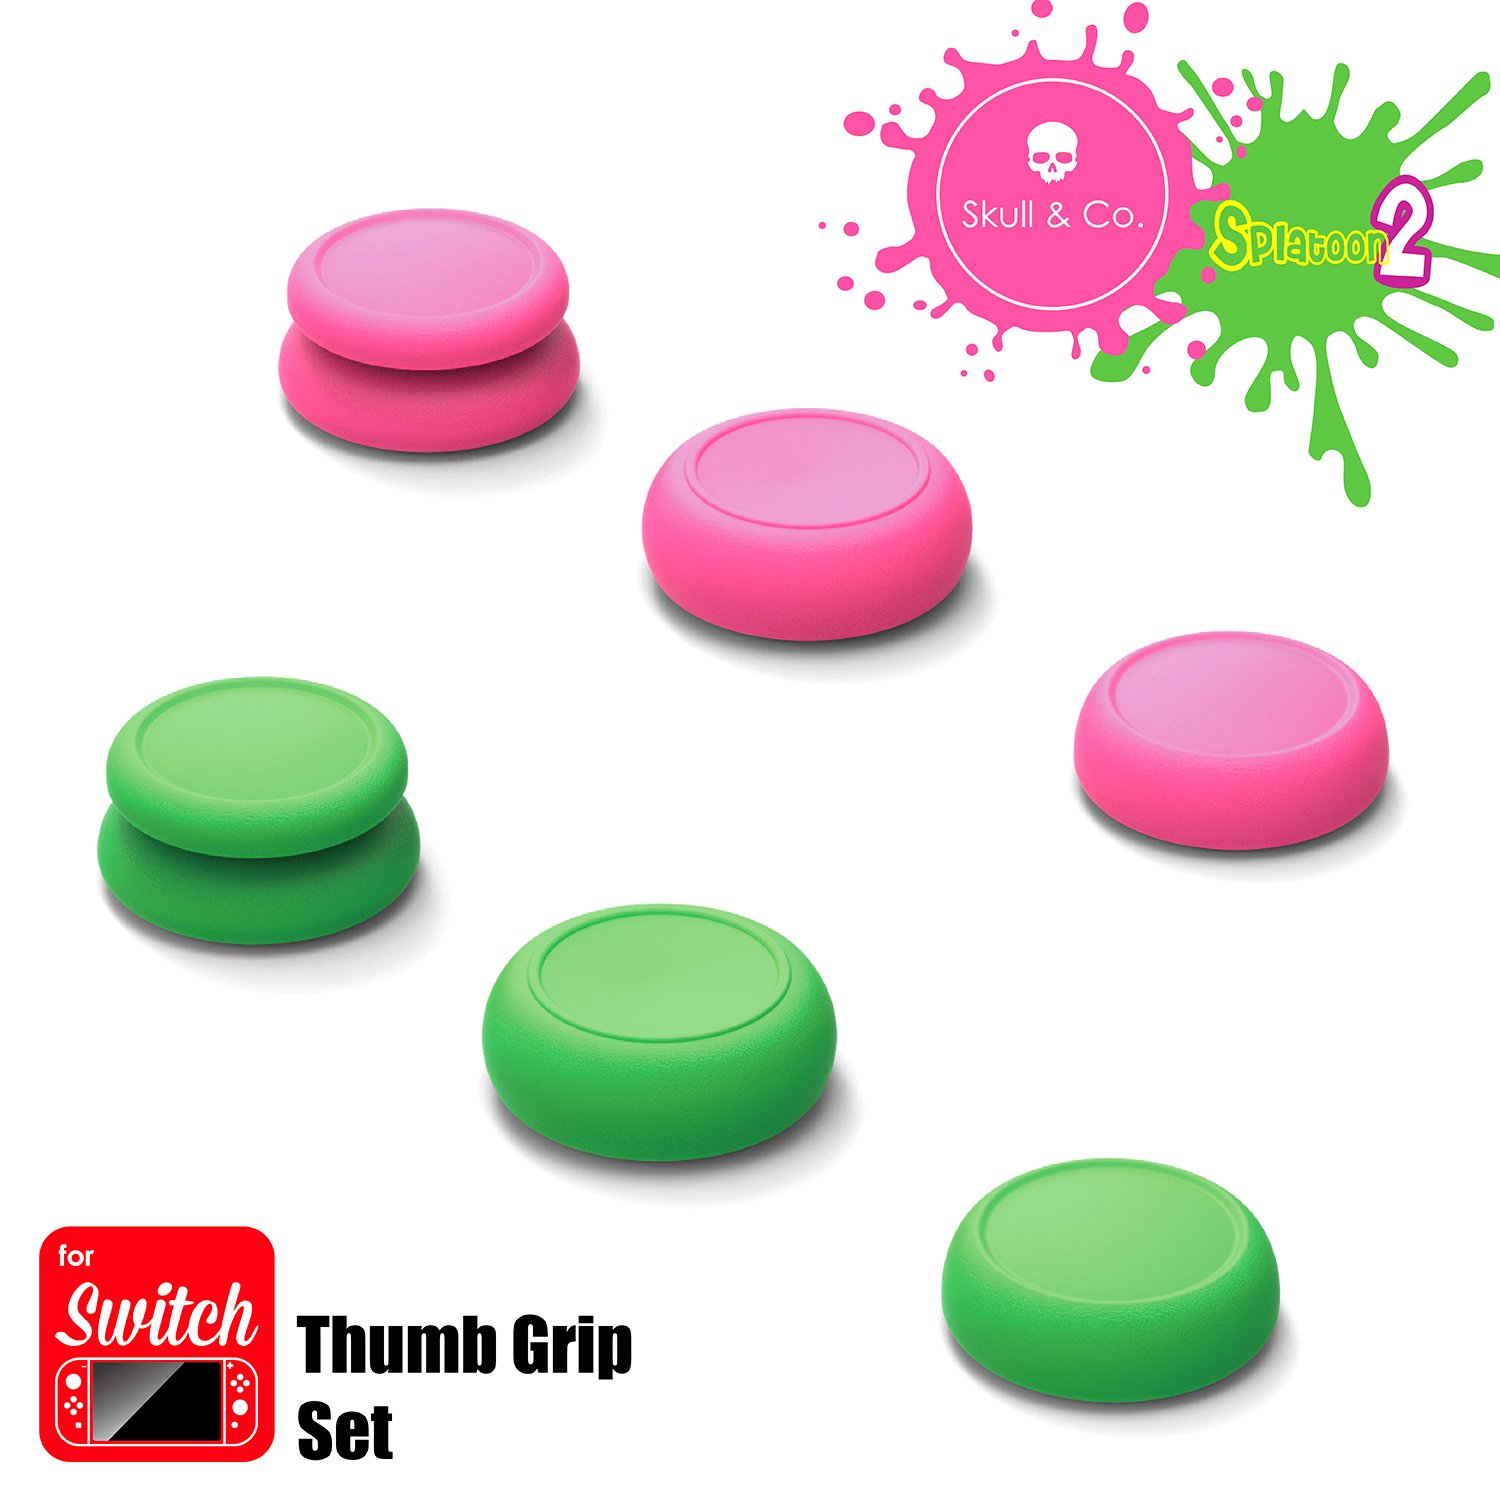 Skull & Co. Skin, Cqc And Fps Thumb Grip Set Joystick Cap Analog Stick Cap For Nintendo Switch Joy Con Controller   Neon Pink+Green(Splatoon2 Edition), 3 Pairs(6pcs) by Skull & Co.